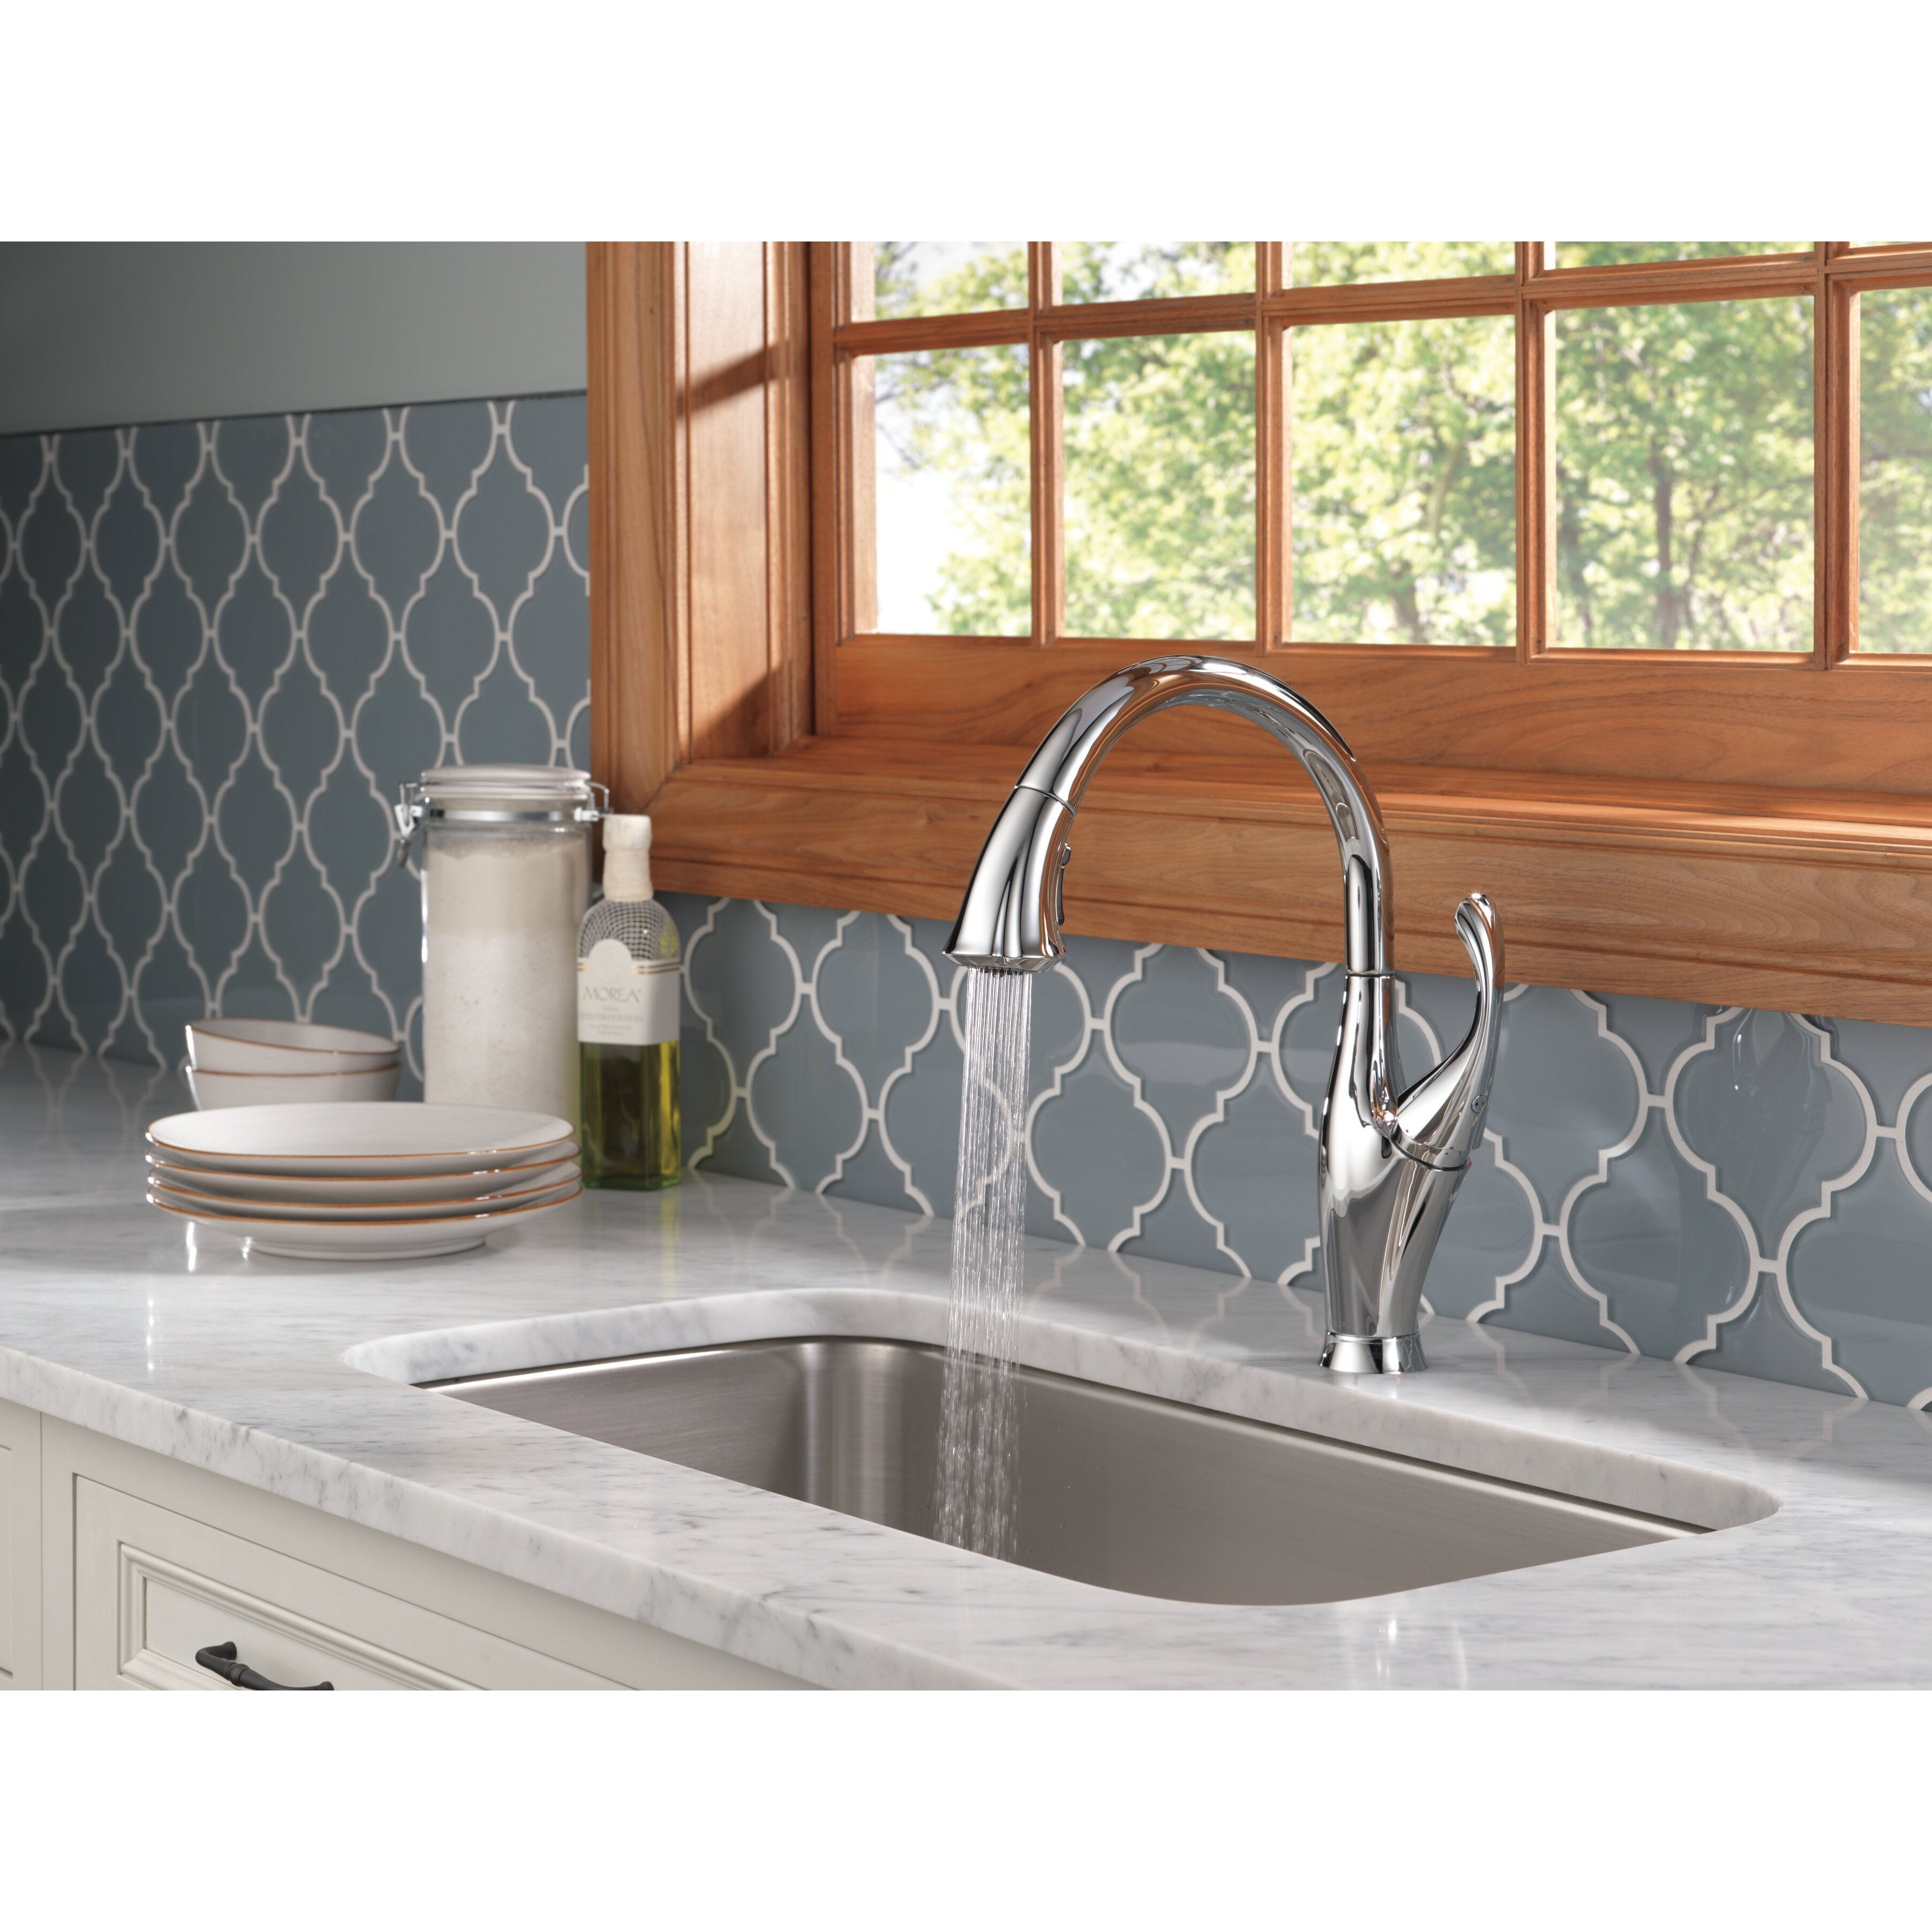 Delta Touch2o Kitchen Faucet Delta Addison Single Handle Pull Down Standard Kitchen Faucet